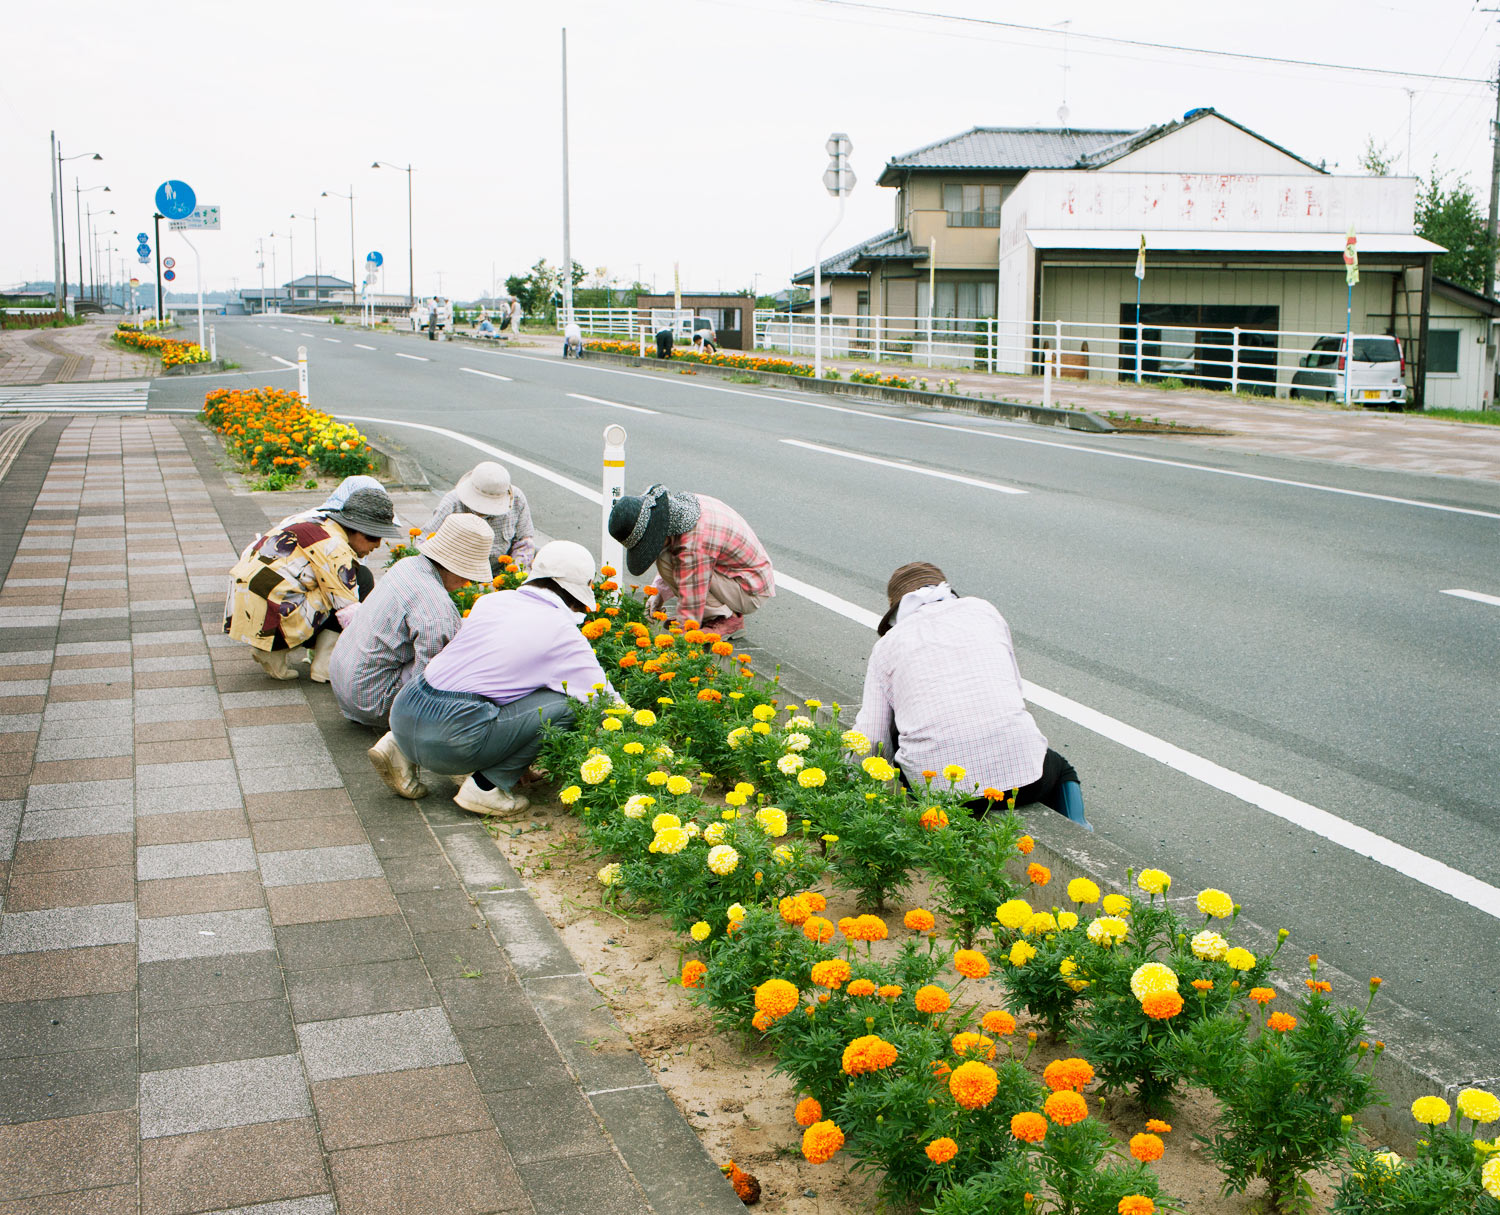 A group of women from a local senior-citizen group in Minamisoma, who also planted sunflowers throughout the region